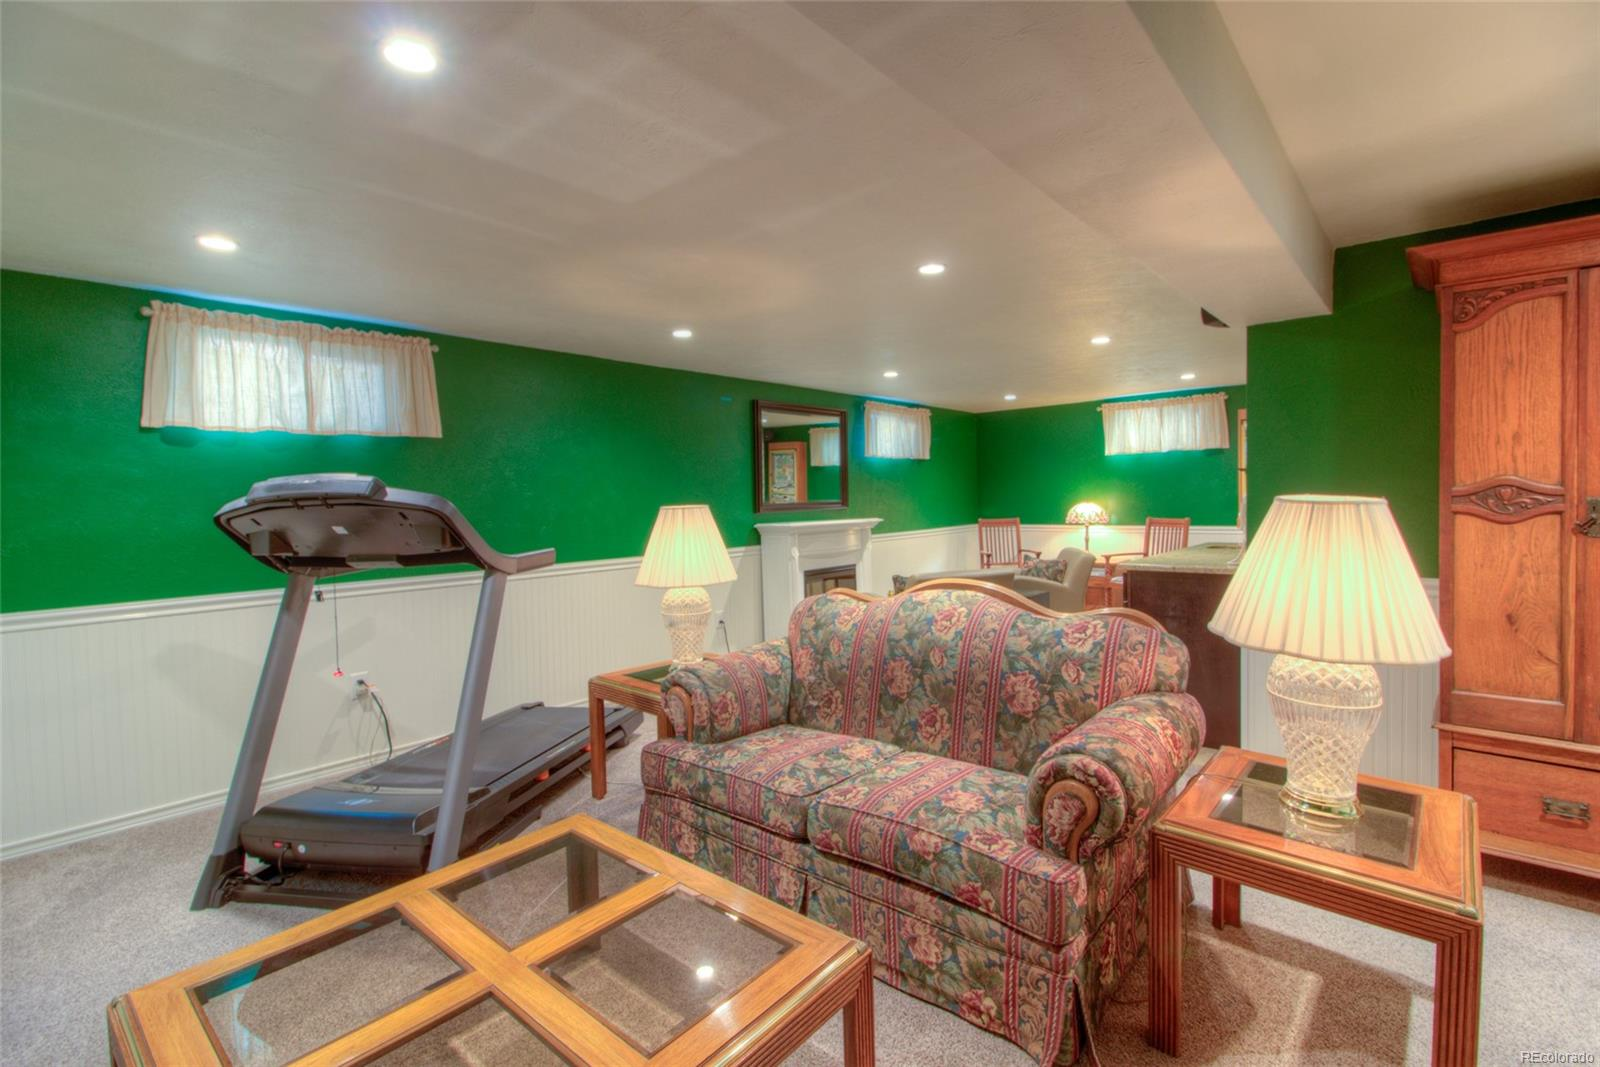 Basement was remodeled in 2014